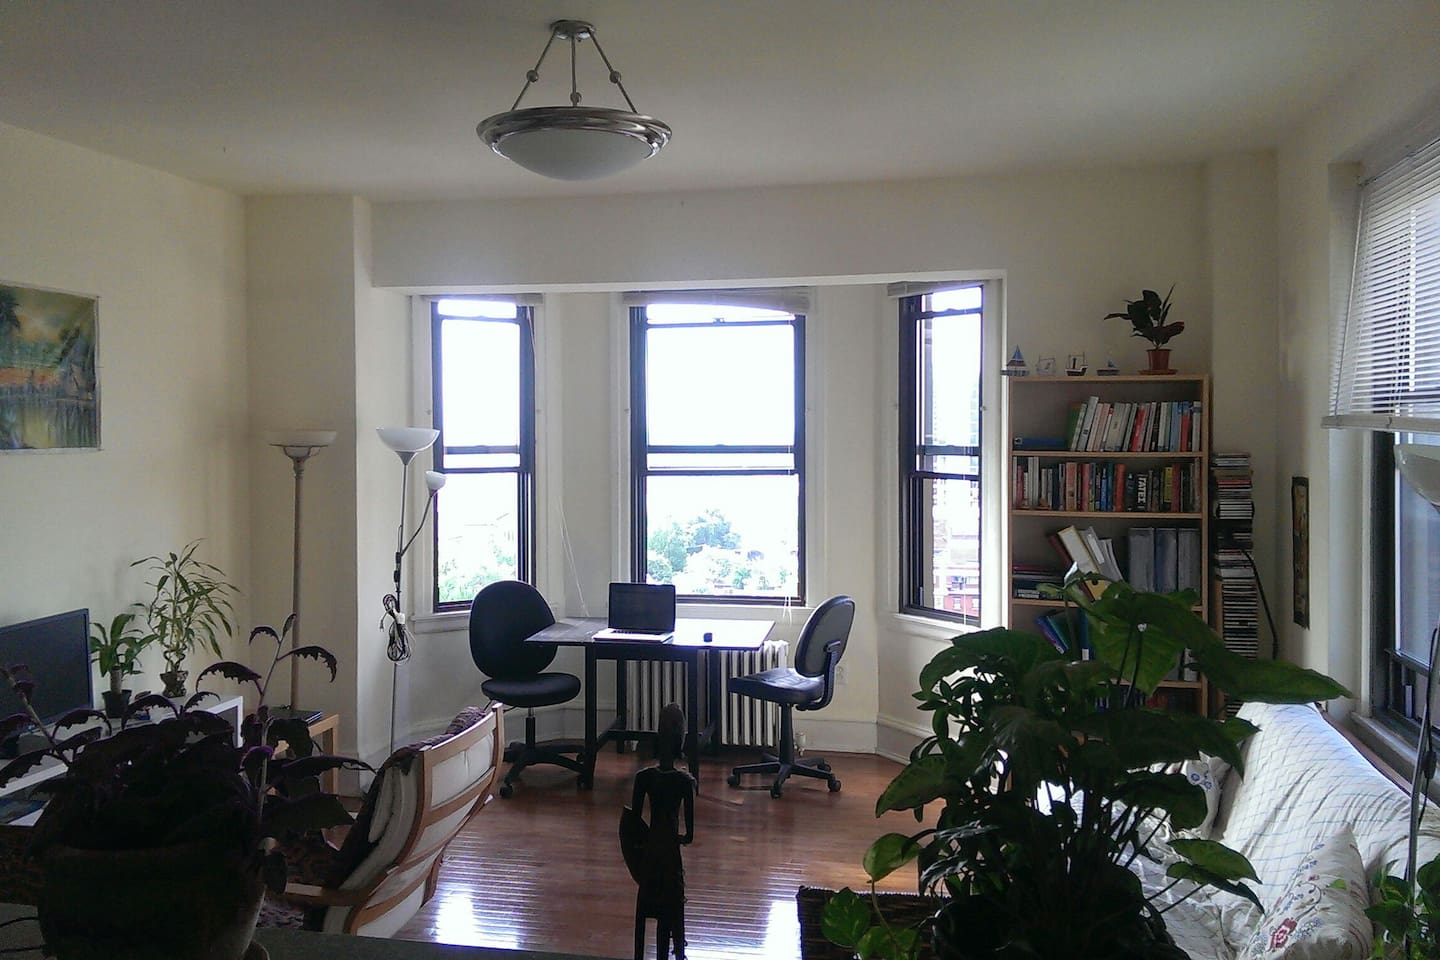 southern part of the living room. Huge apartment. Non-stop light through the many windows